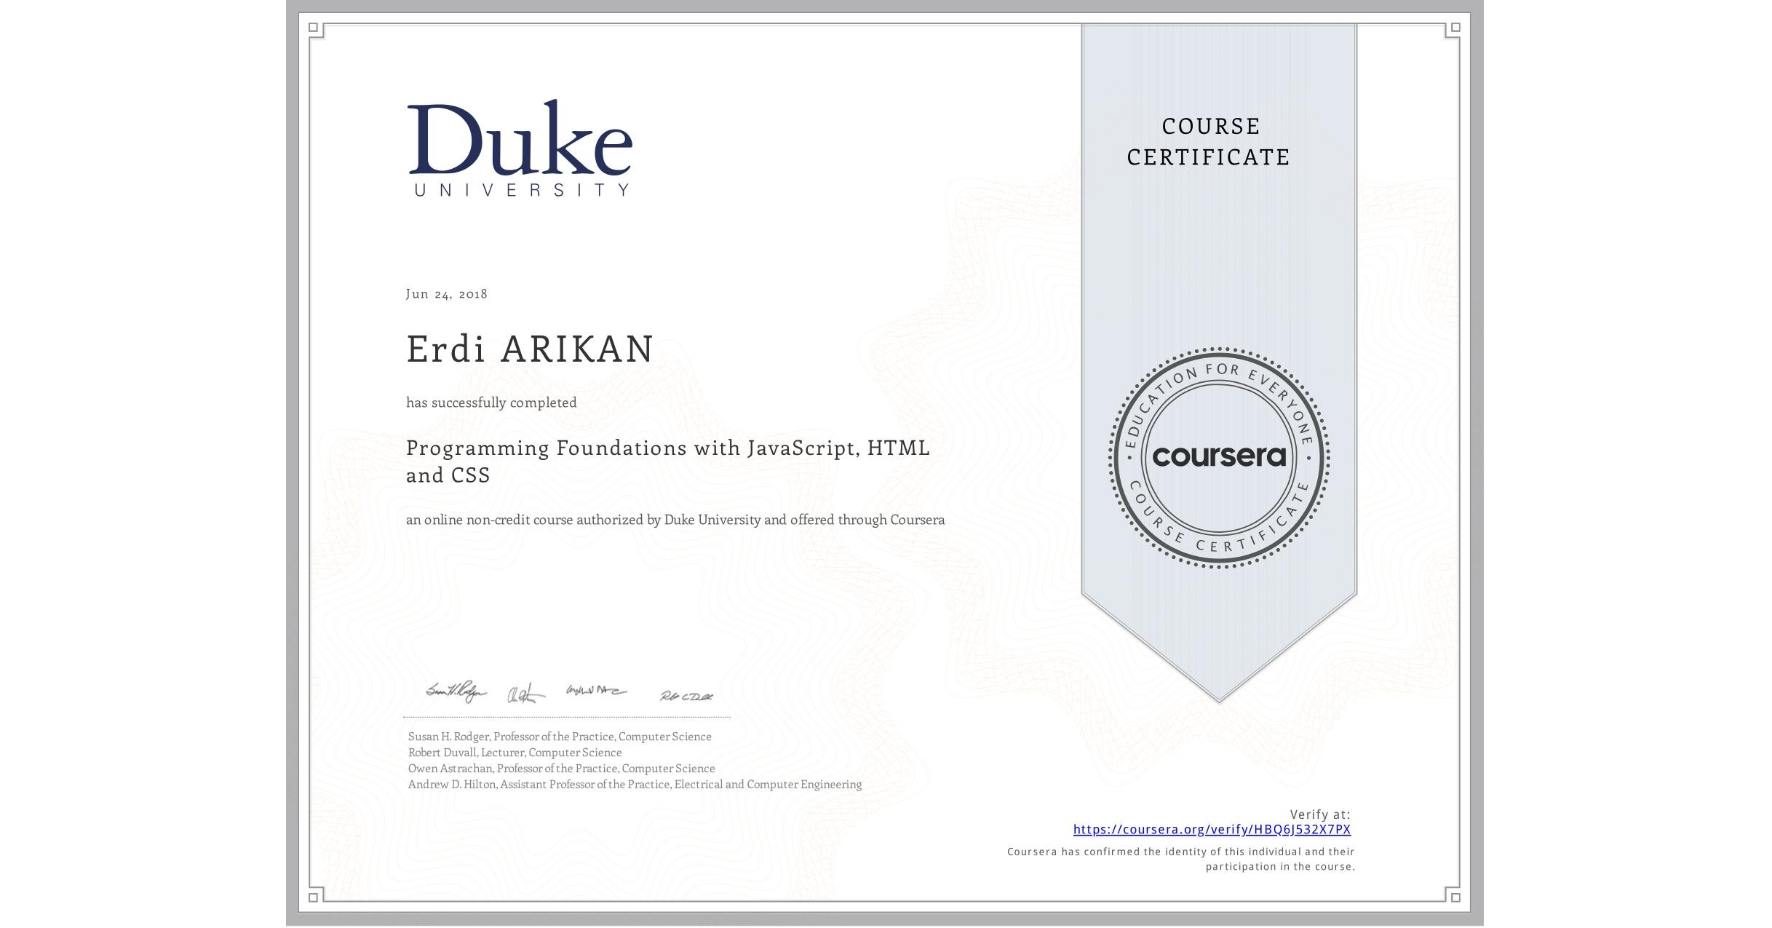 View certificate for Erdi ARIKAN, Programming Foundations with JavaScript, HTML and CSS, an online non-credit course authorized by Duke University and offered through Coursera